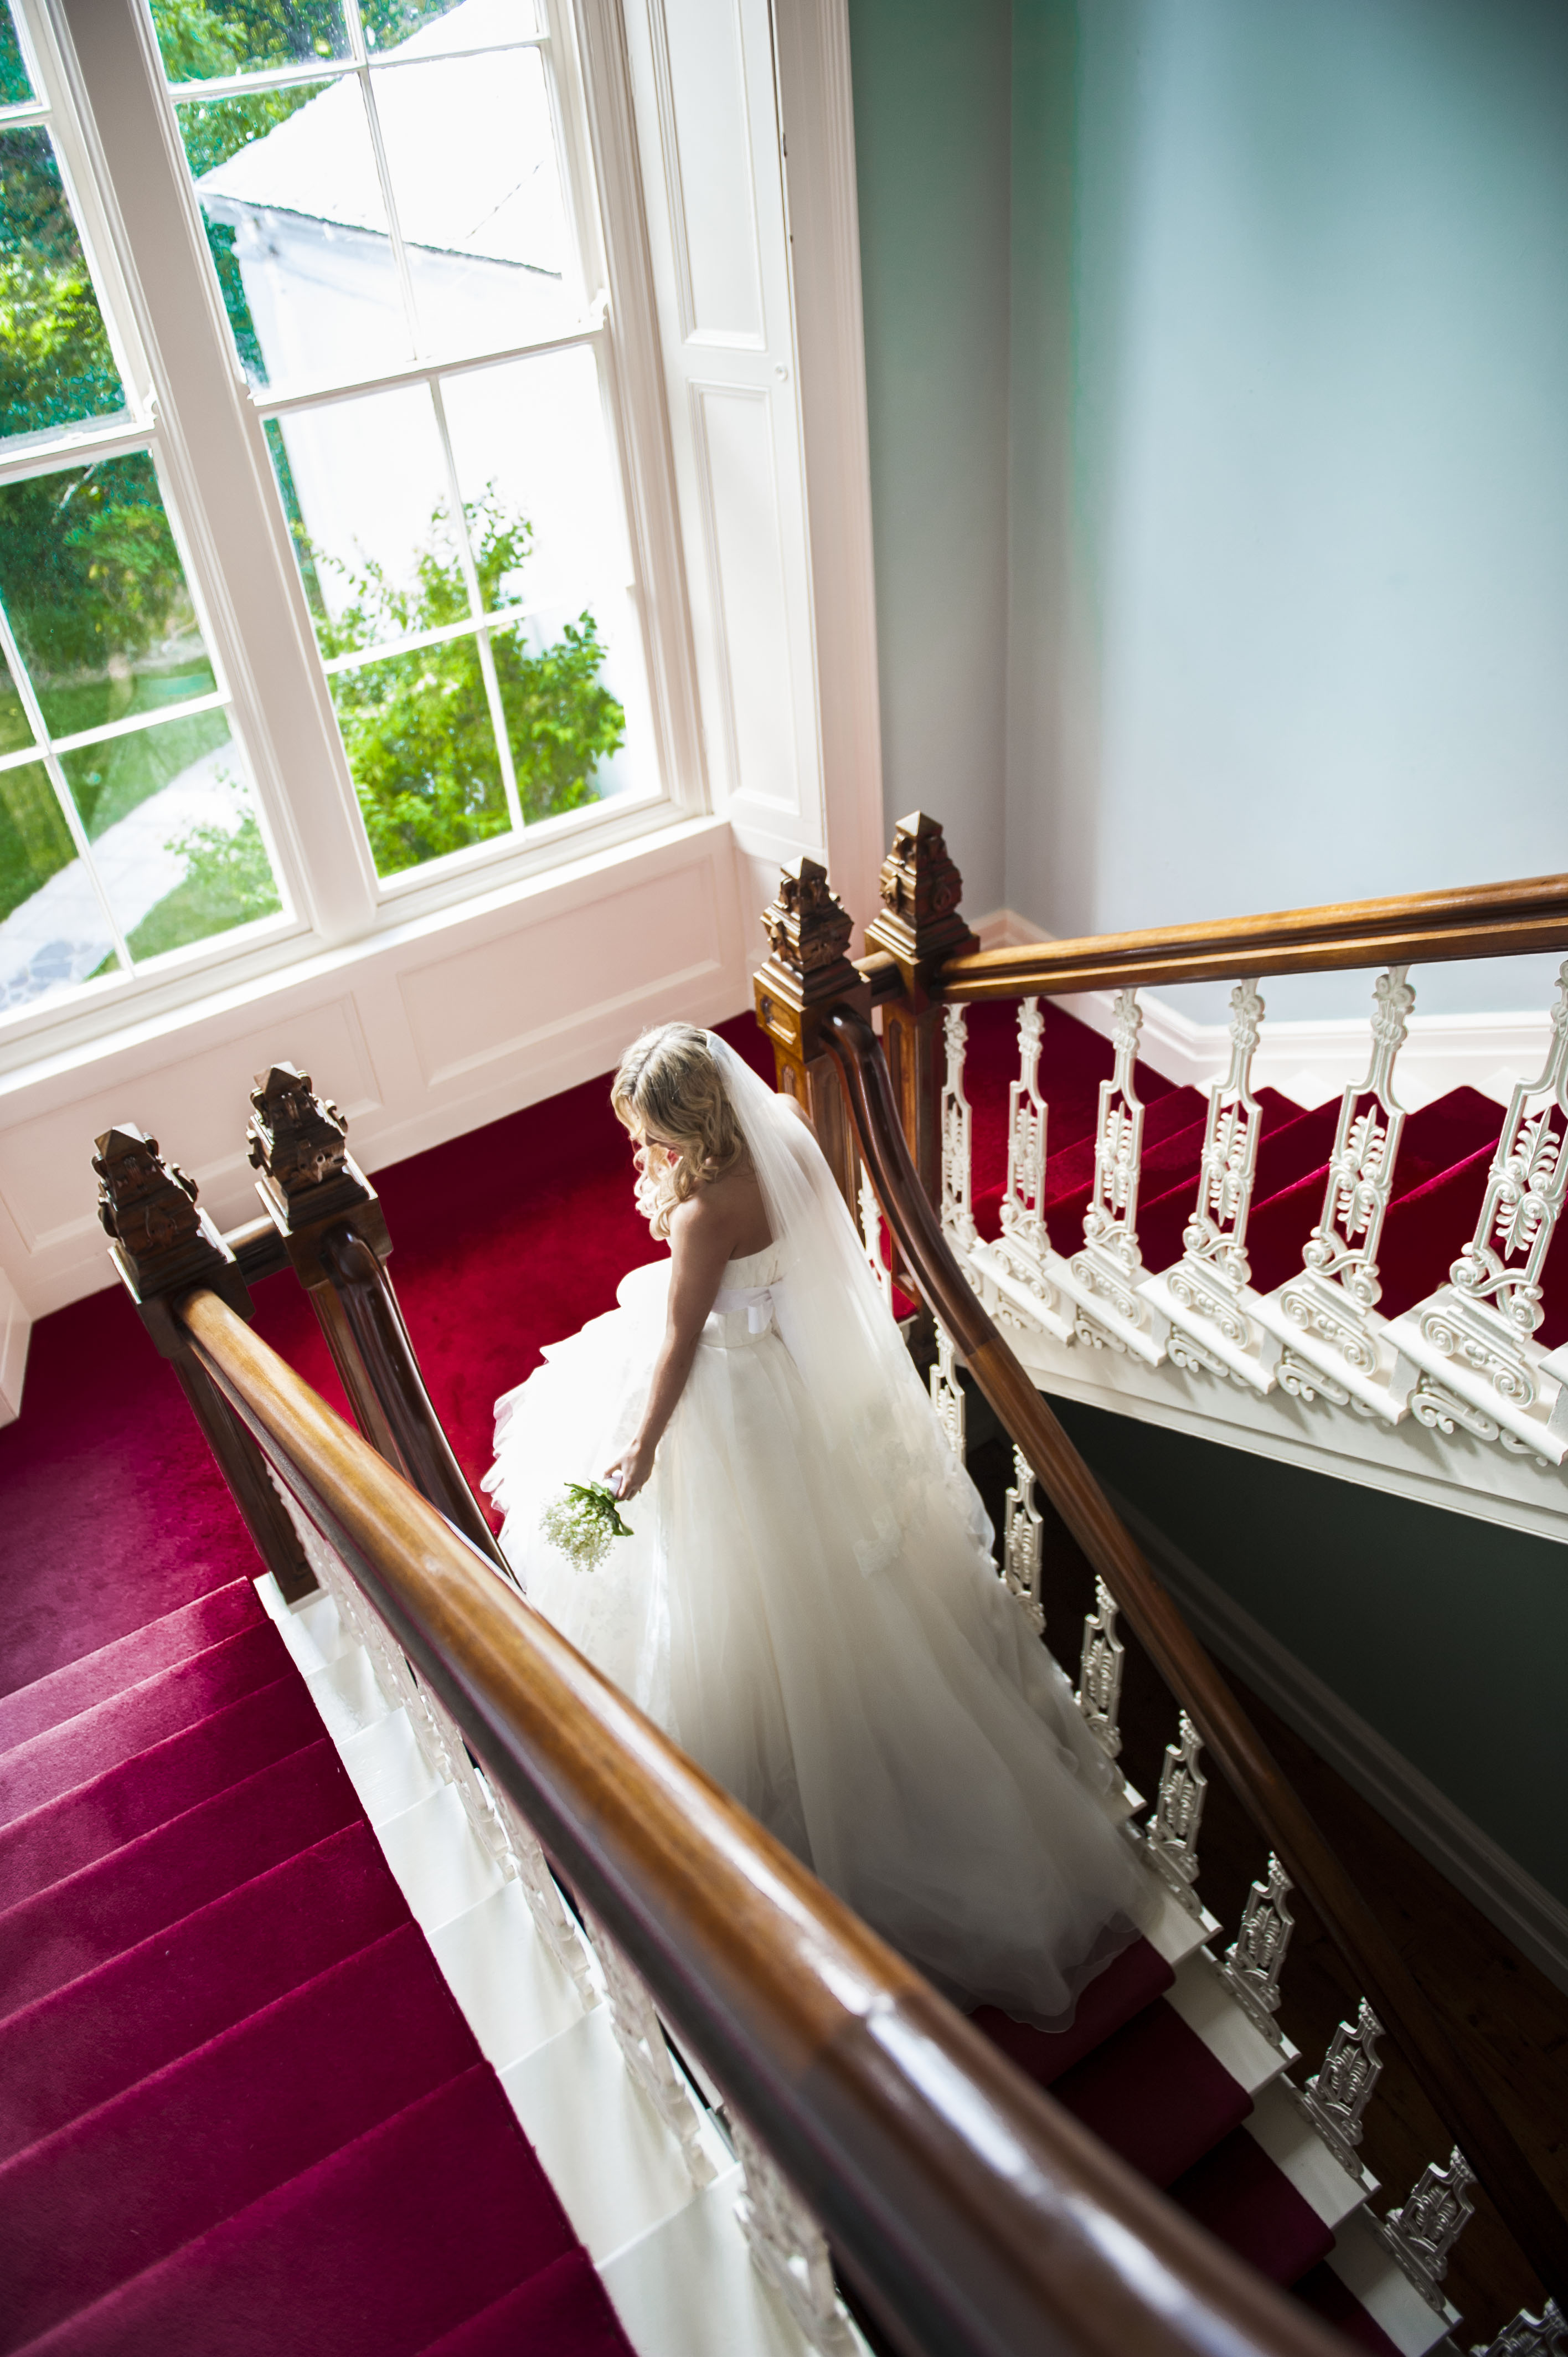 Destination weddings very special at Coolclogher House